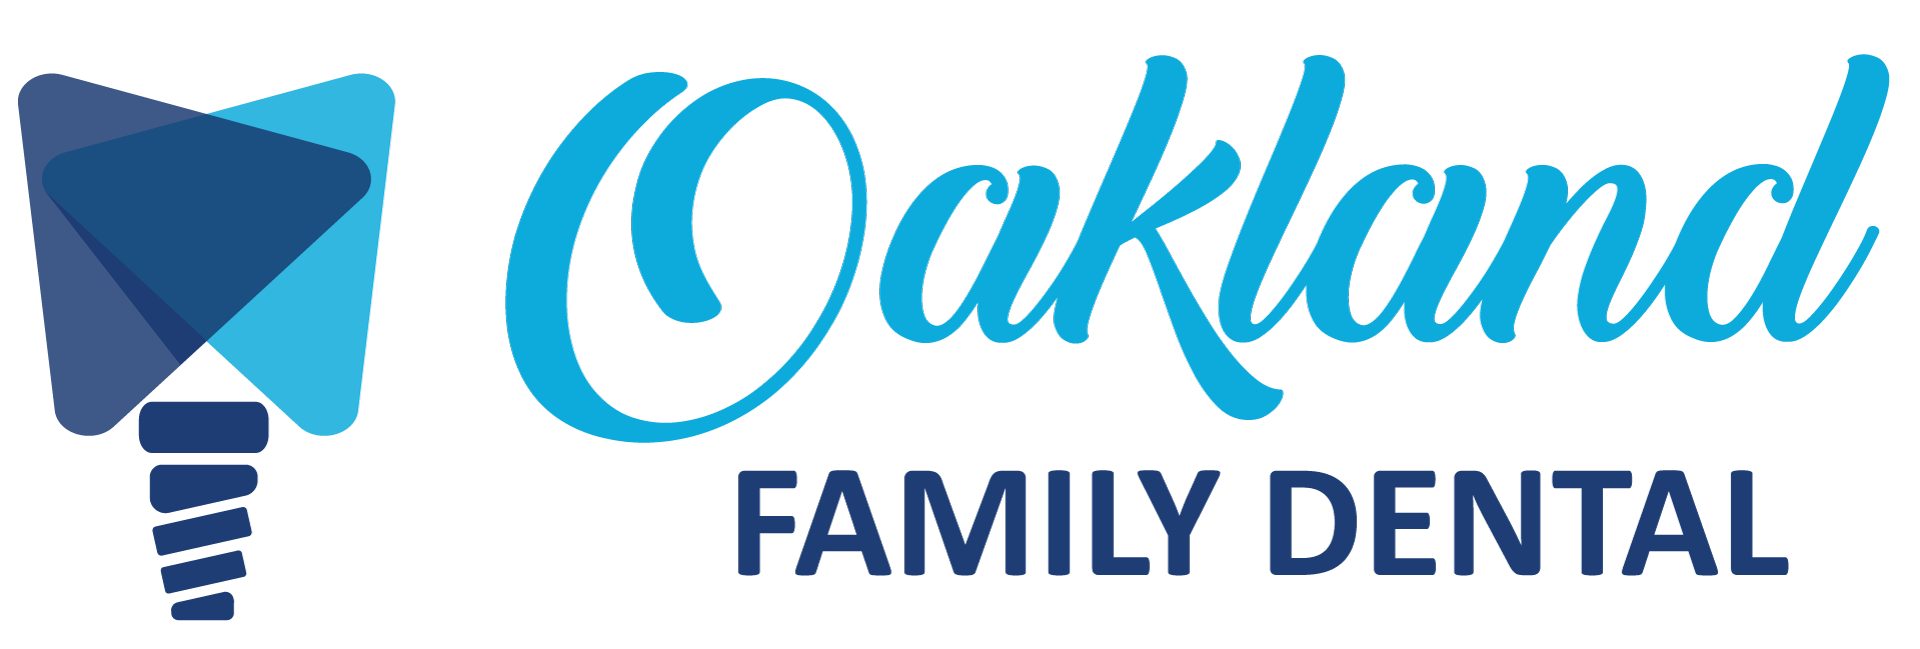 Oakland Family Dental Now Utilizes Innovative i-CAT Technology as Part of their Dental Implant Services